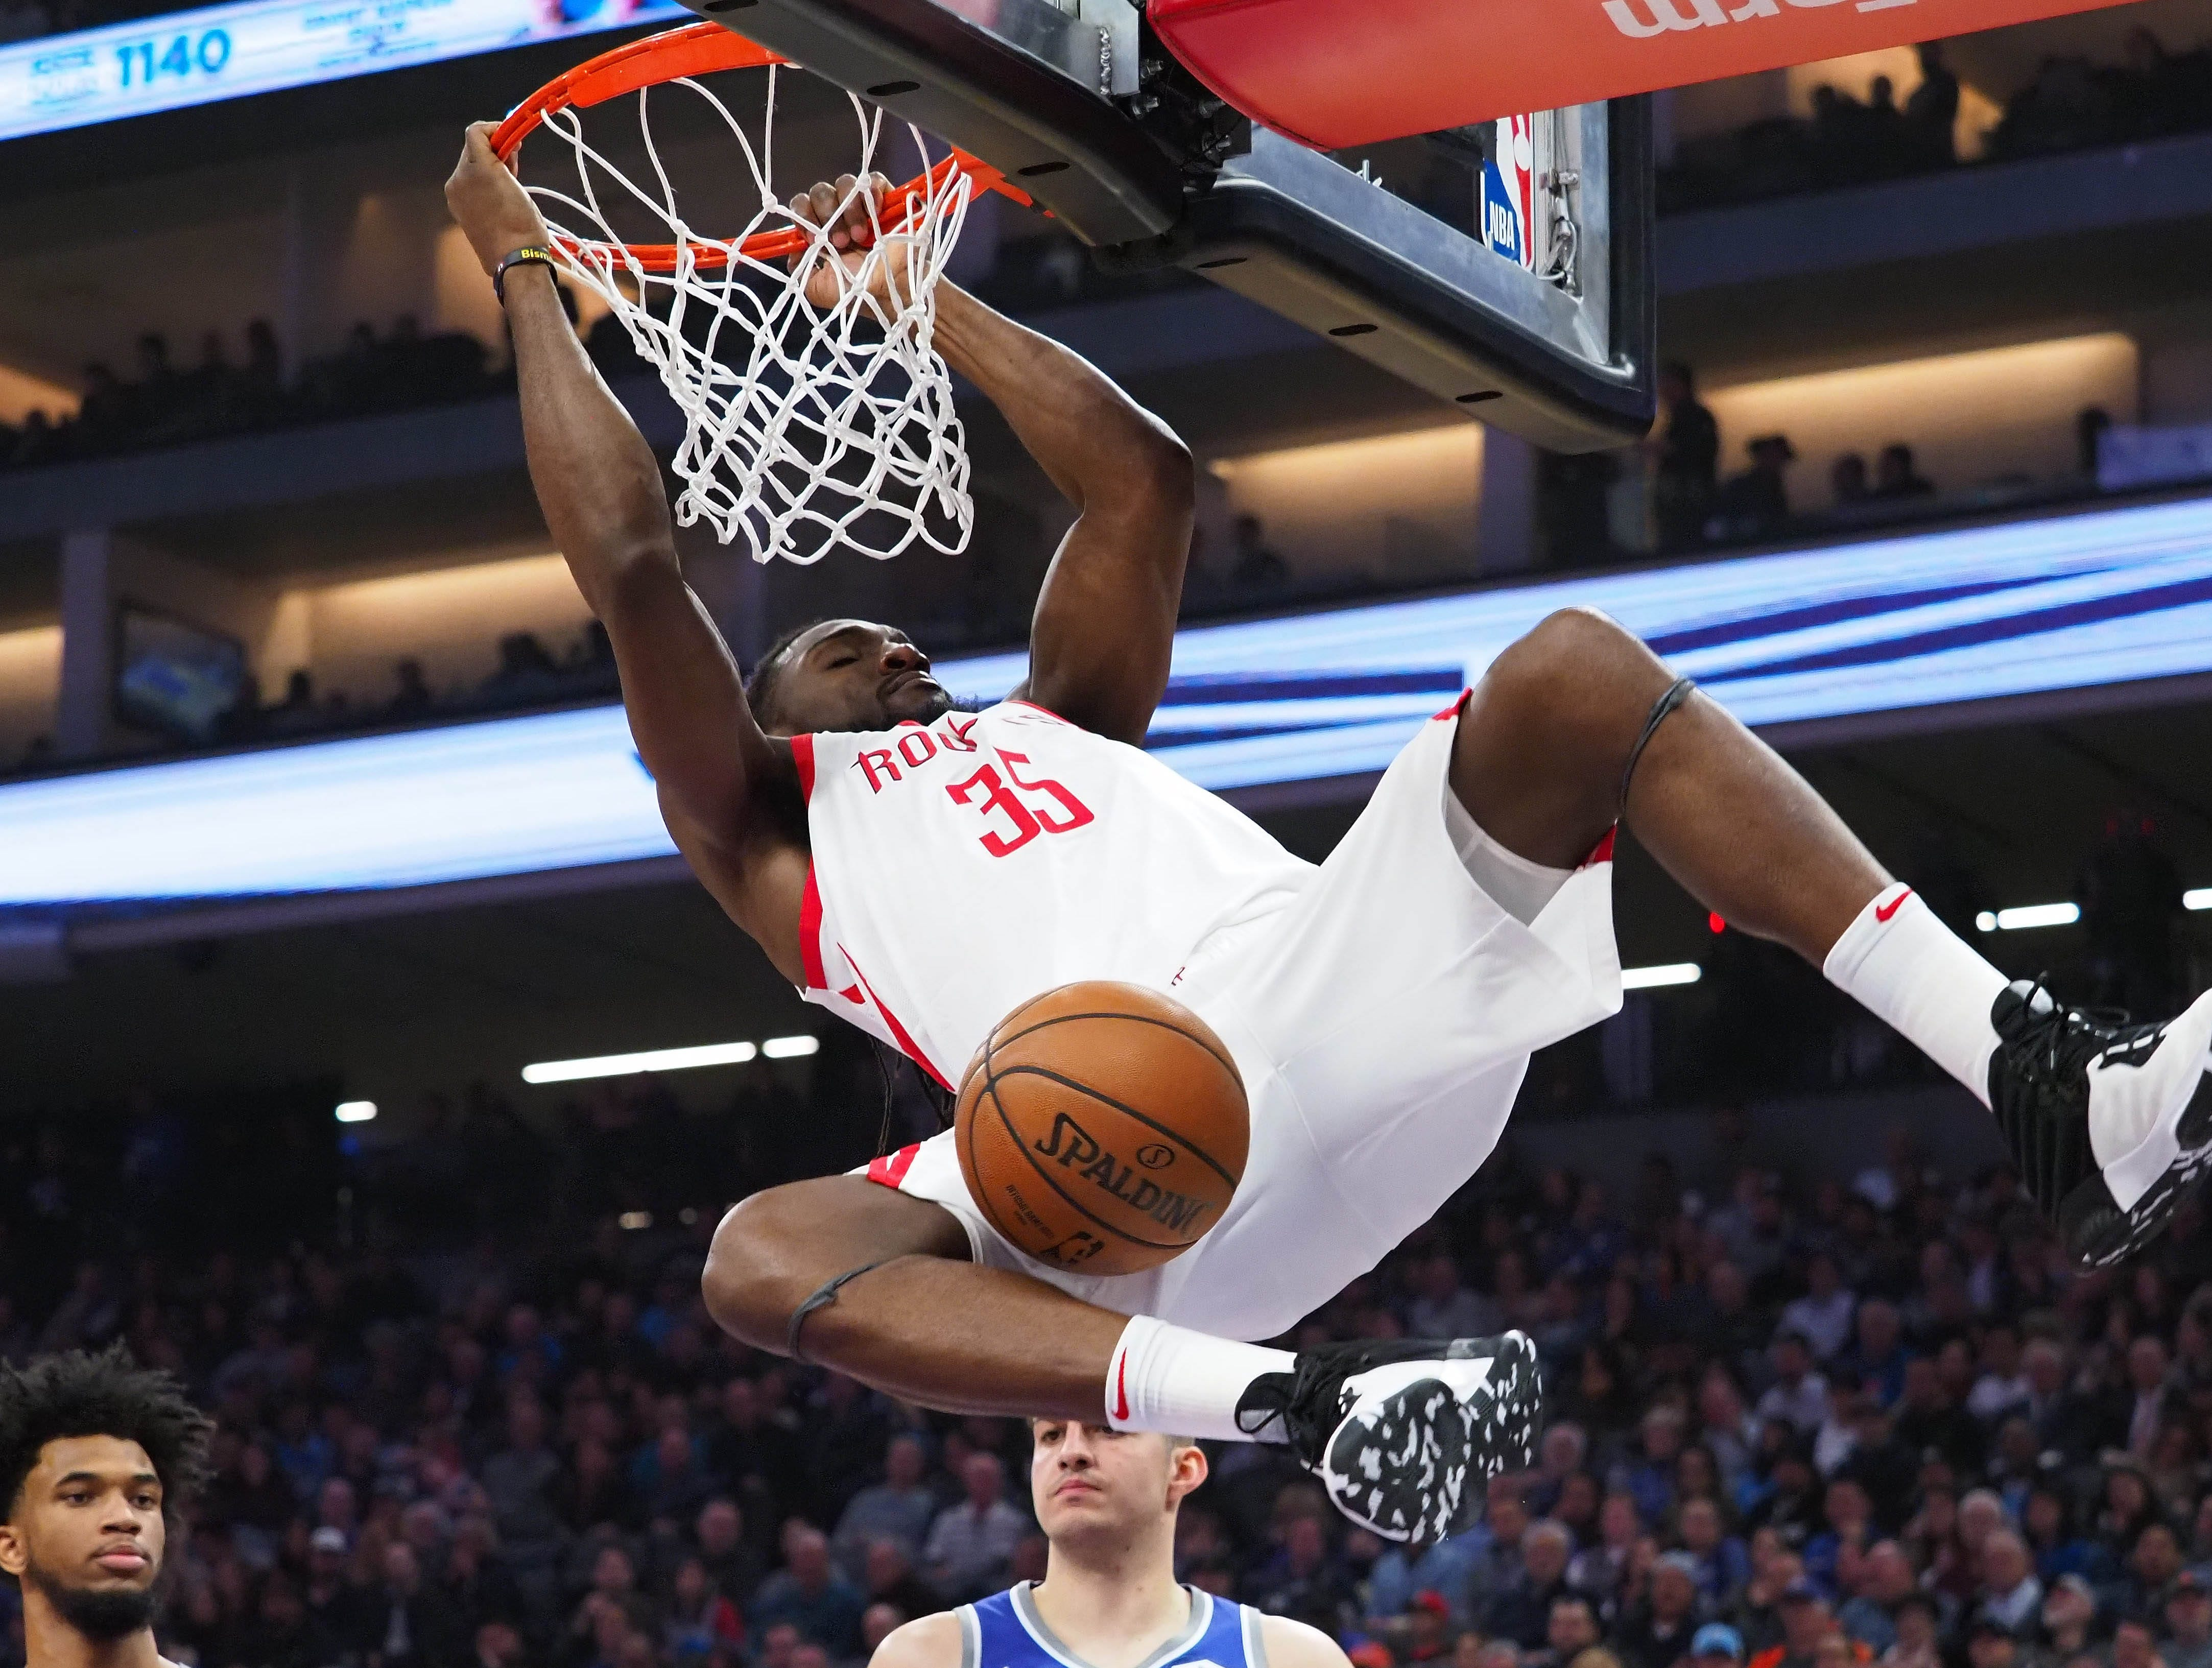 Feb. 6: Houston Rockets forward Kenneth Faried dunks the ball against the Sacramento Kings during the second quarter.